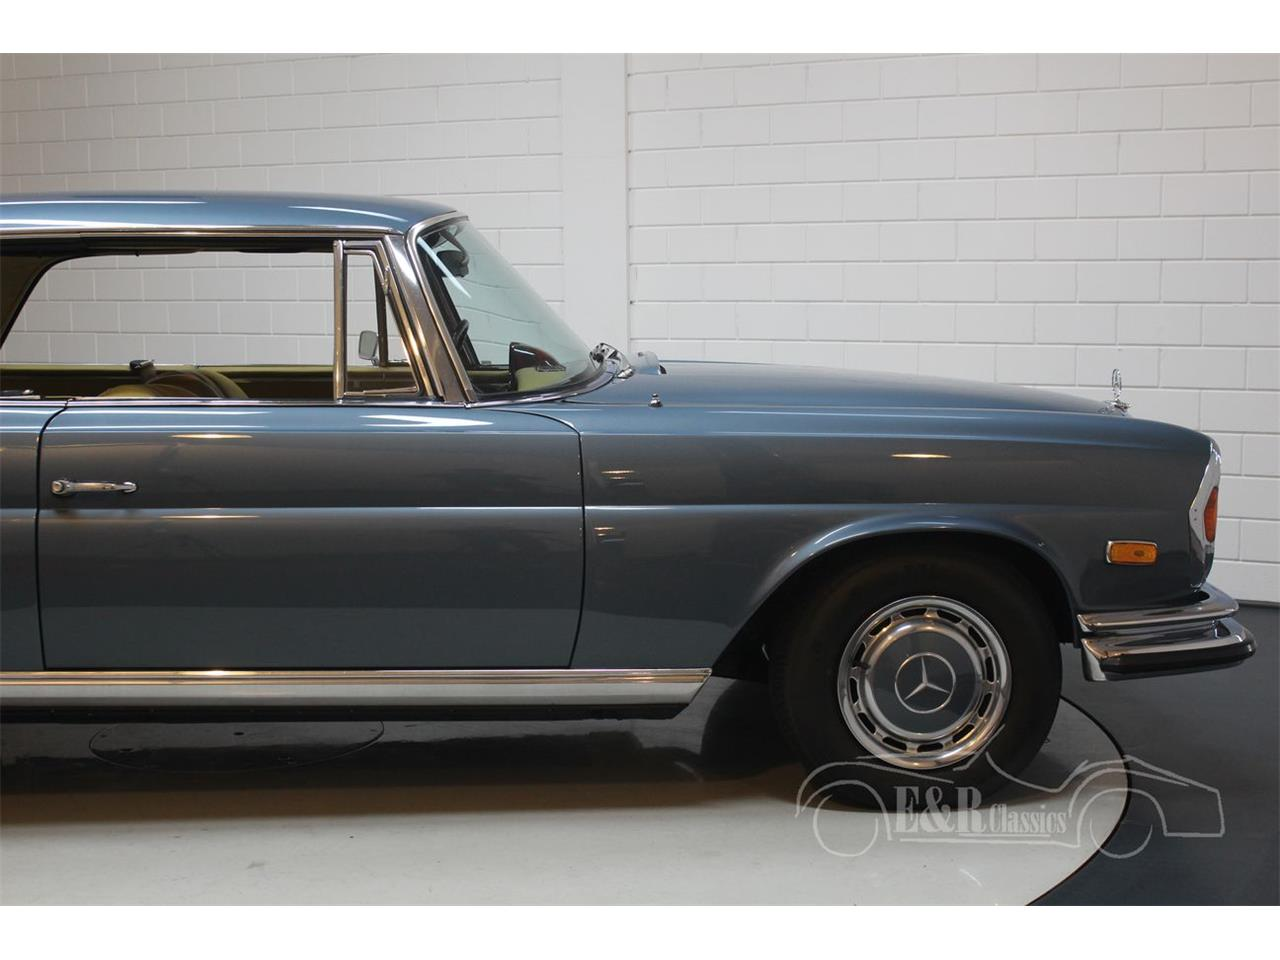 Large Picture of 1971 Mercedes-Benz 280SE located in Noord-Brabant - $113,800.00 Offered by E & R Classics - QEBY